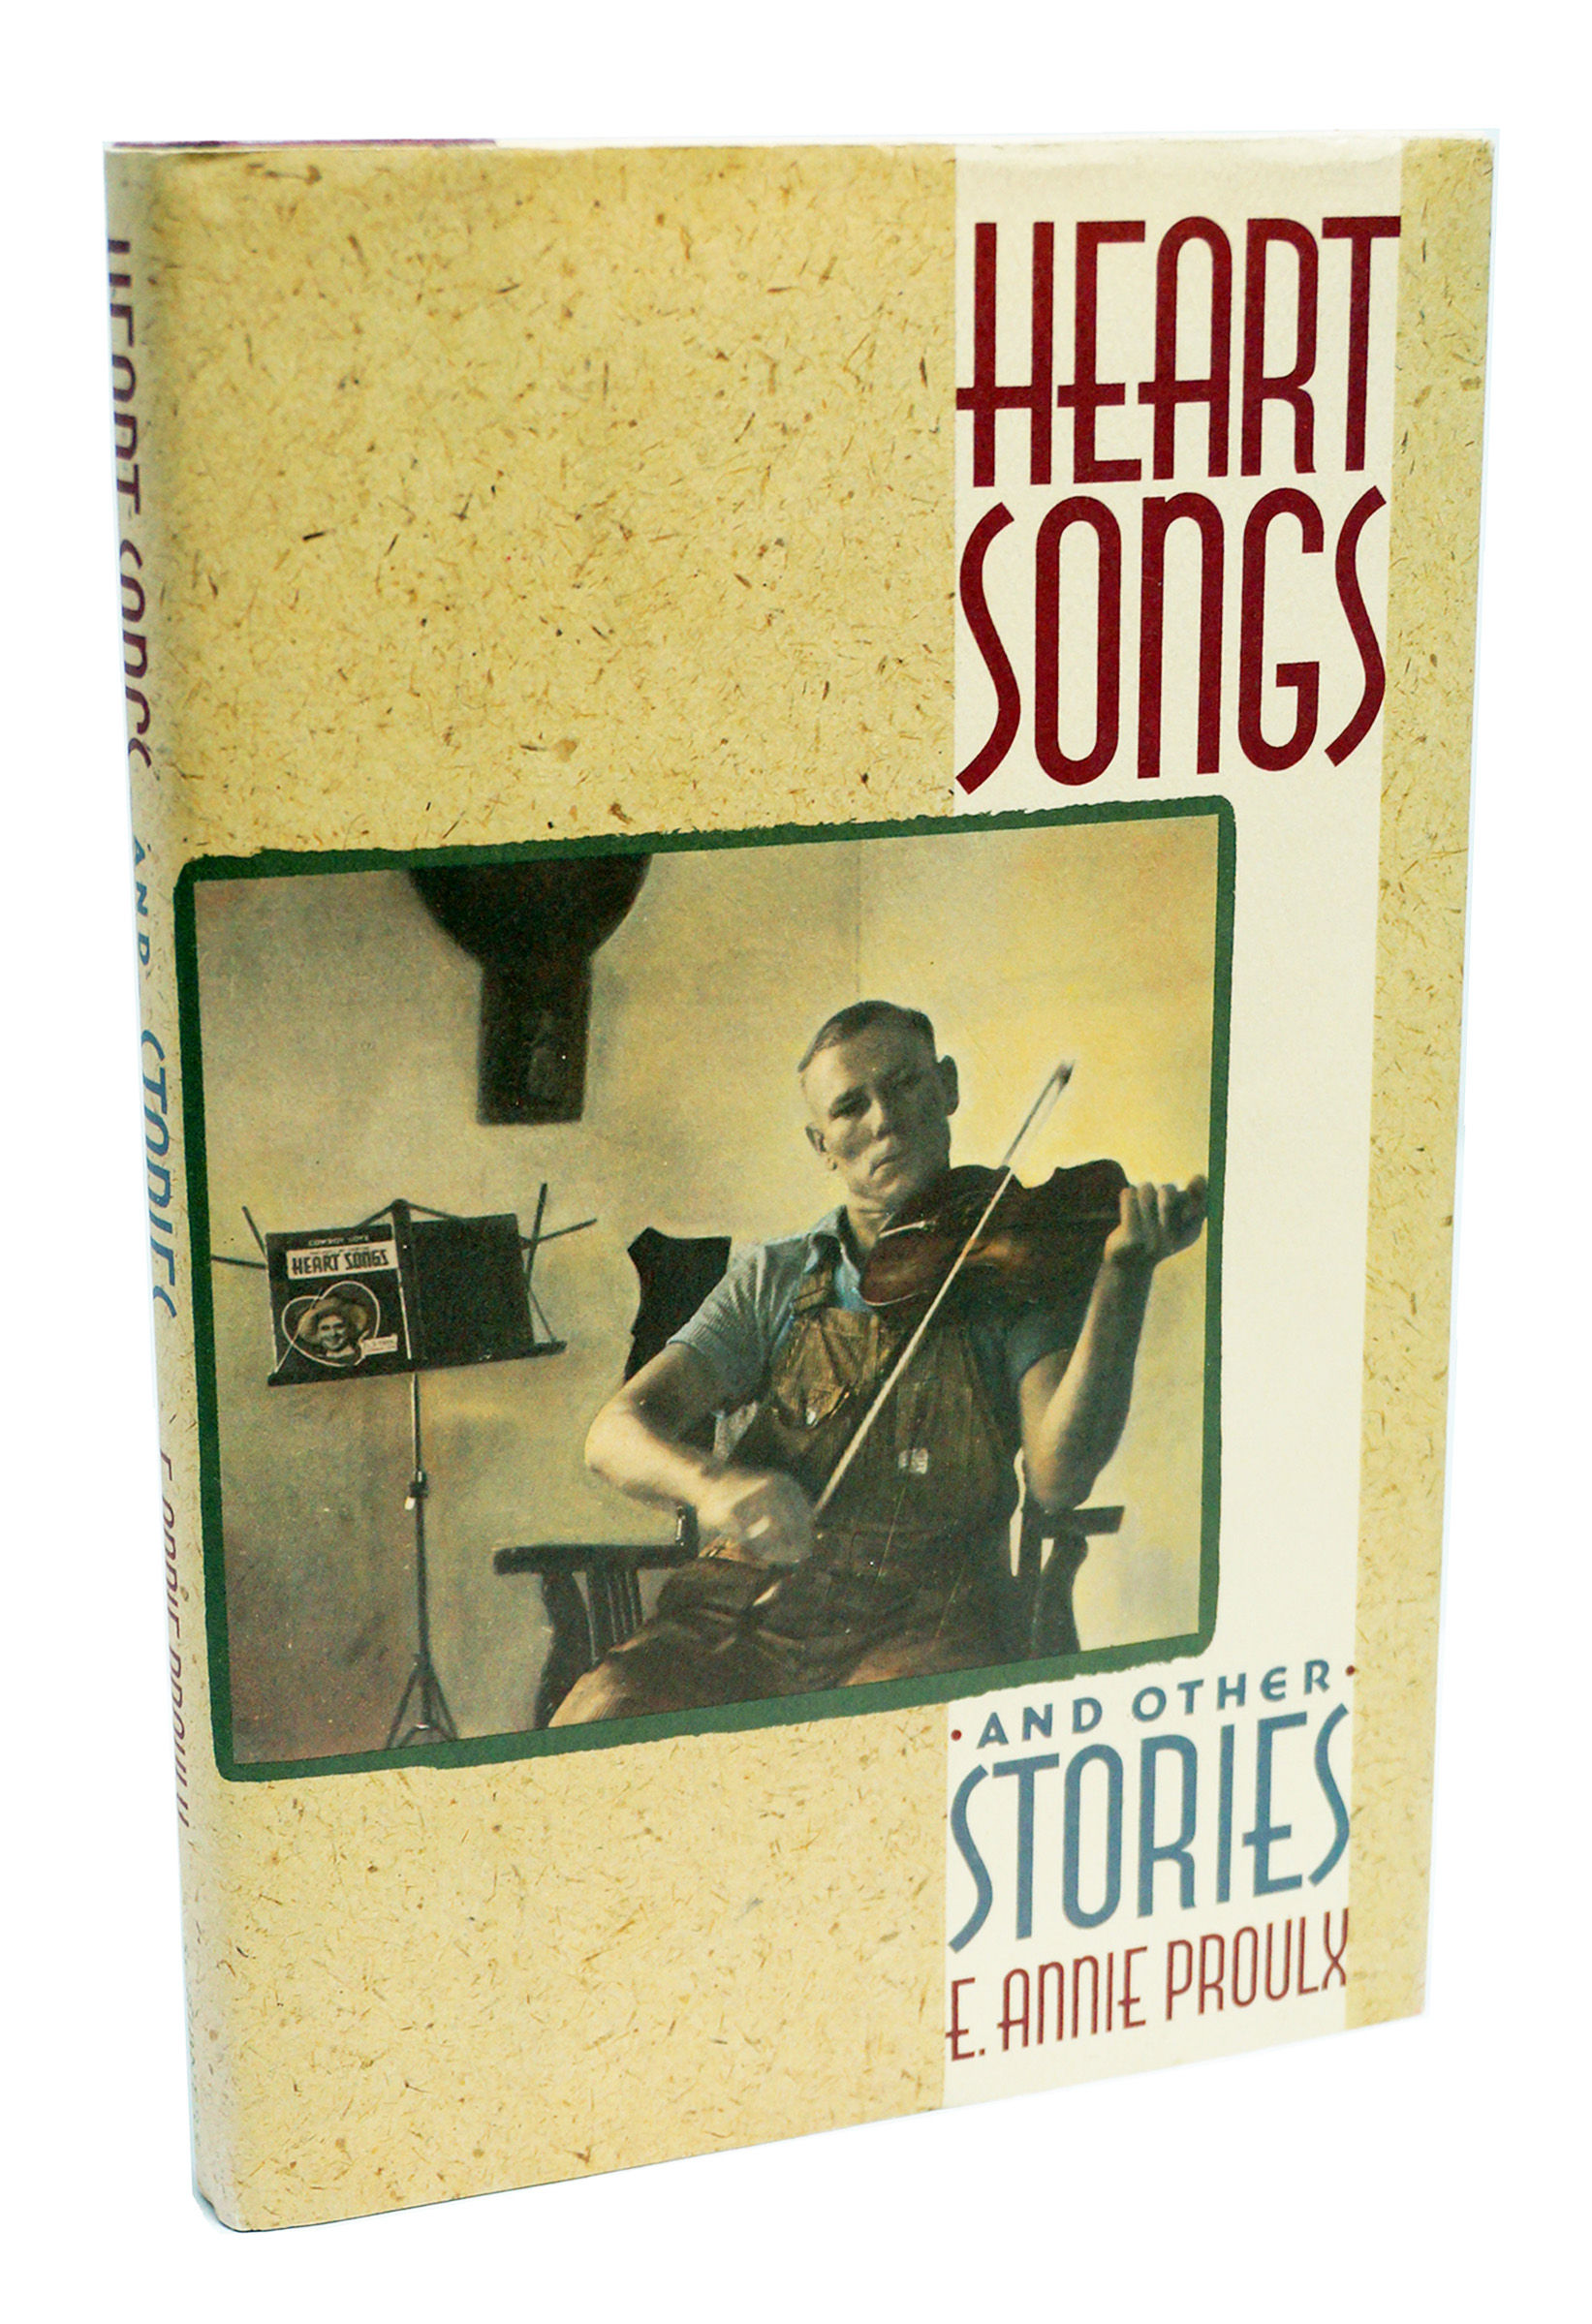 Heart songs by e annie proulx 1988 for Songs from 1988 uk